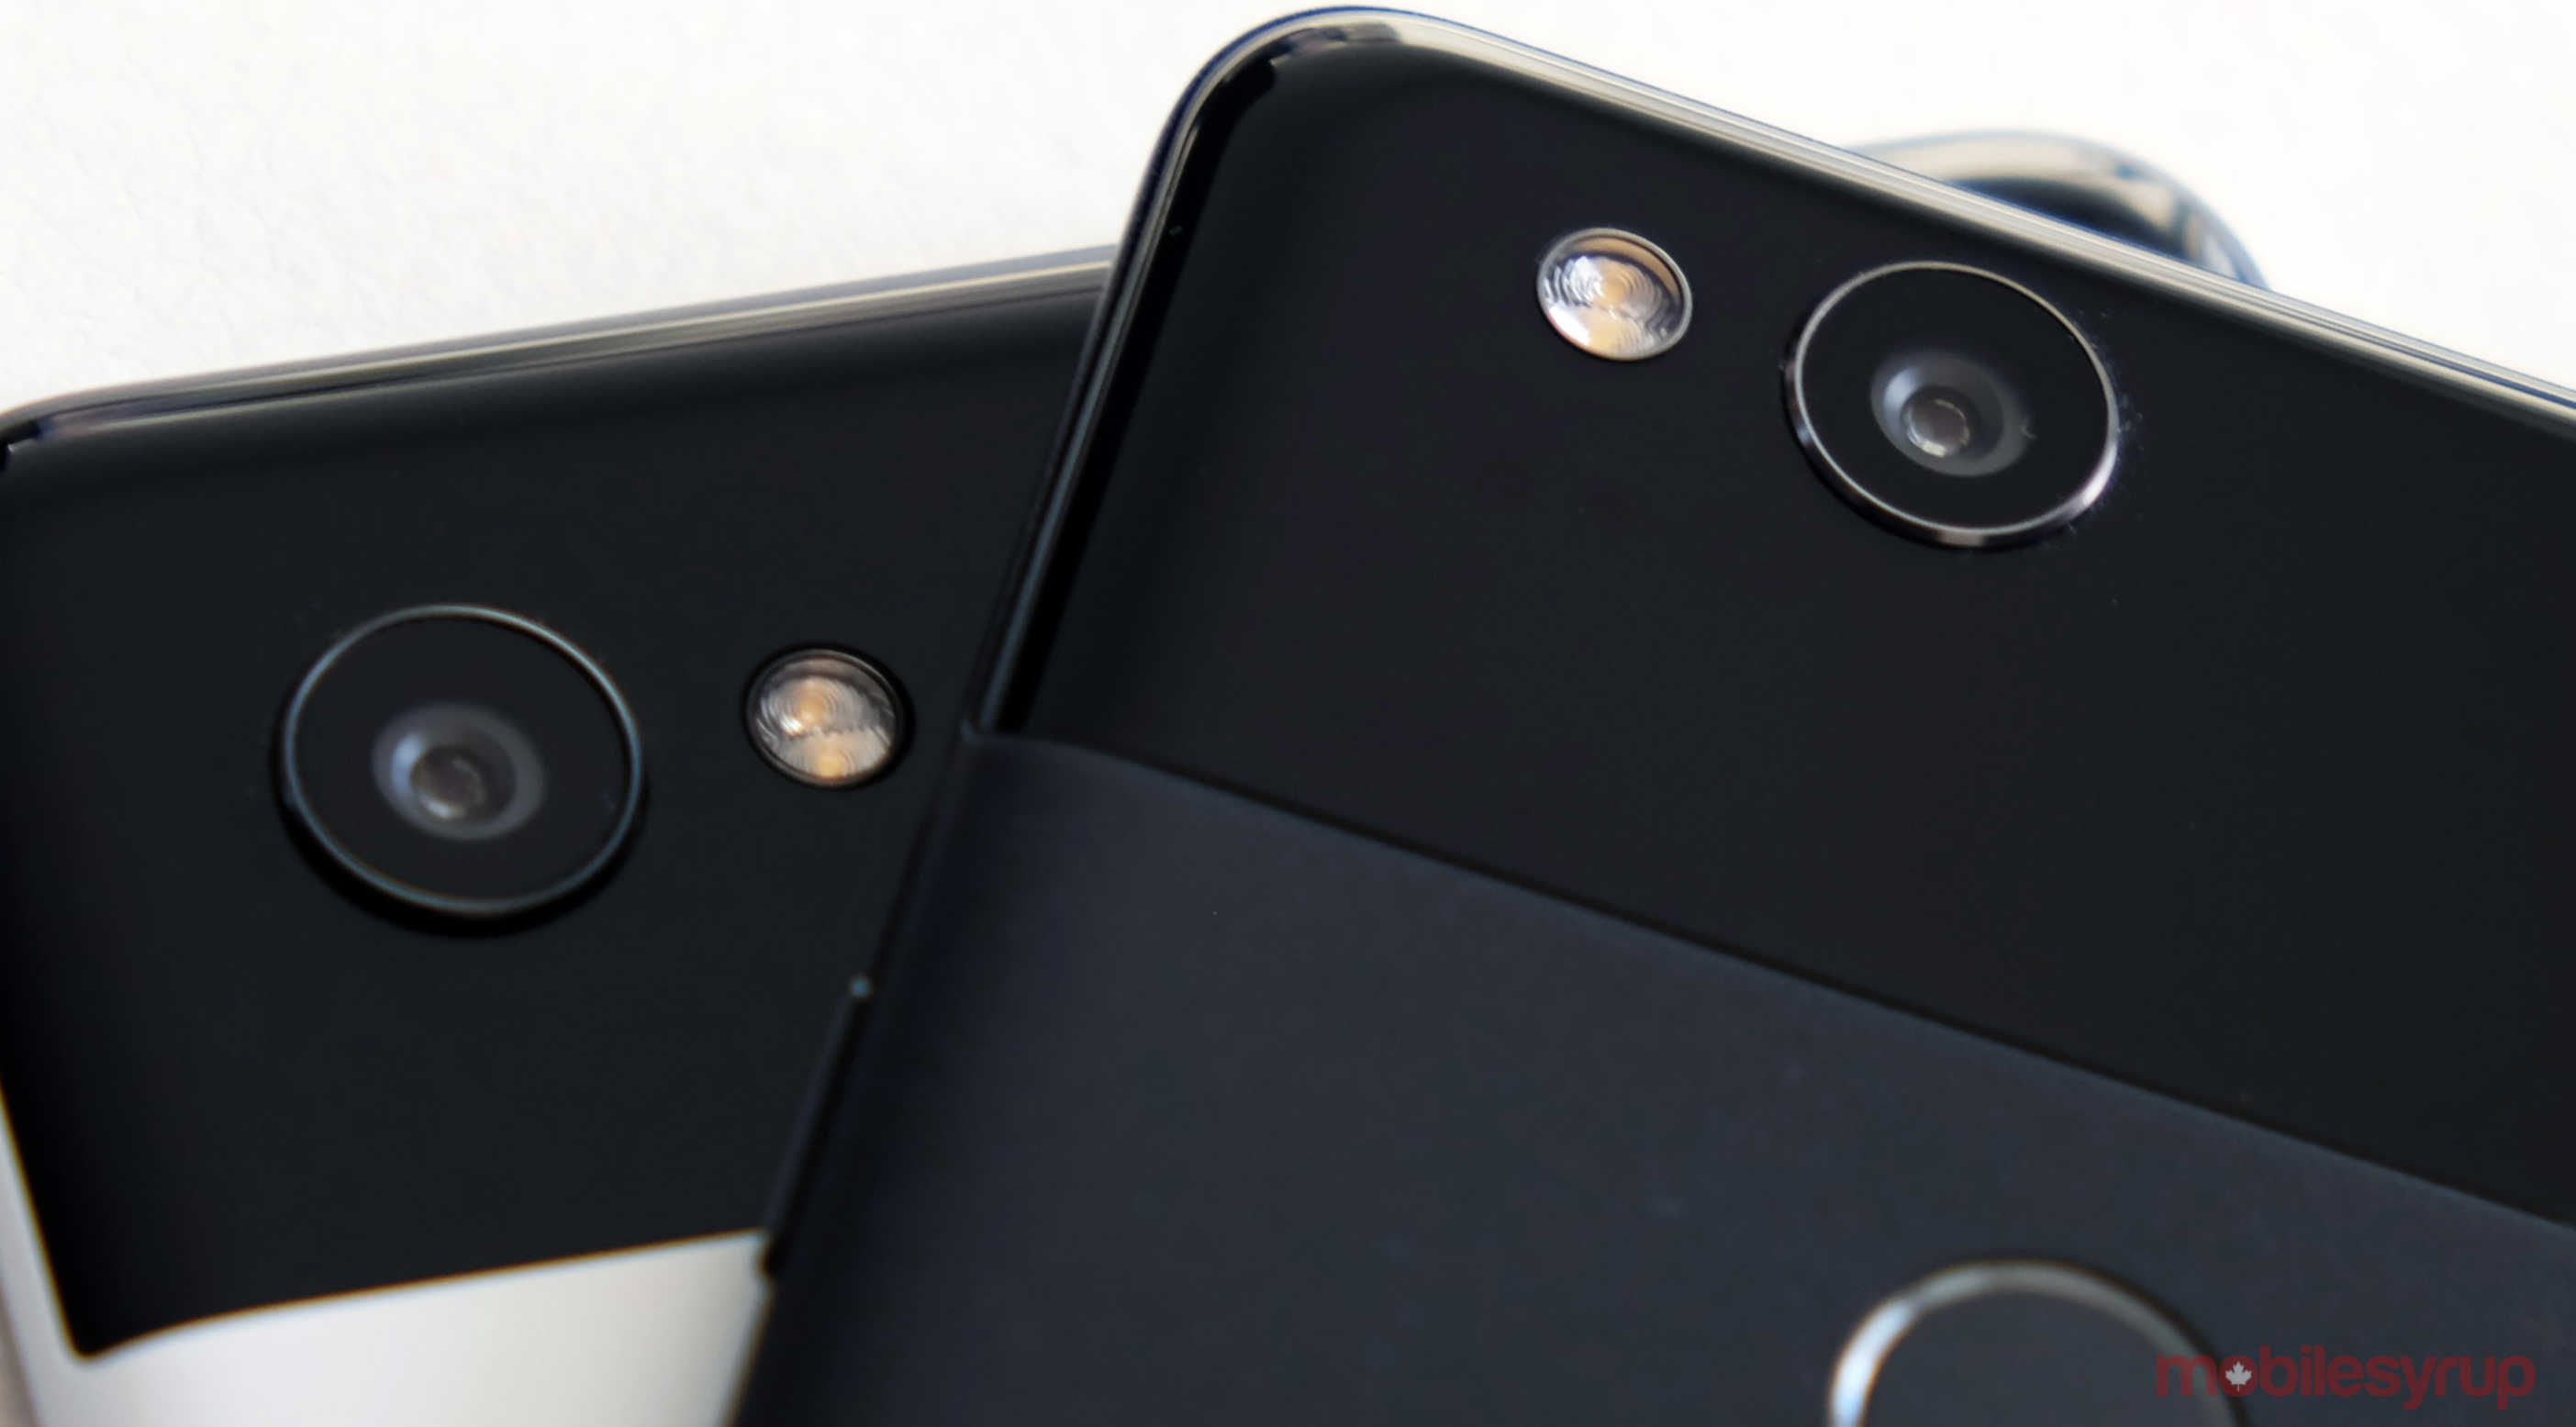 Google Pixel 2 camera issue beginning to appear on Pixel 3 and 4